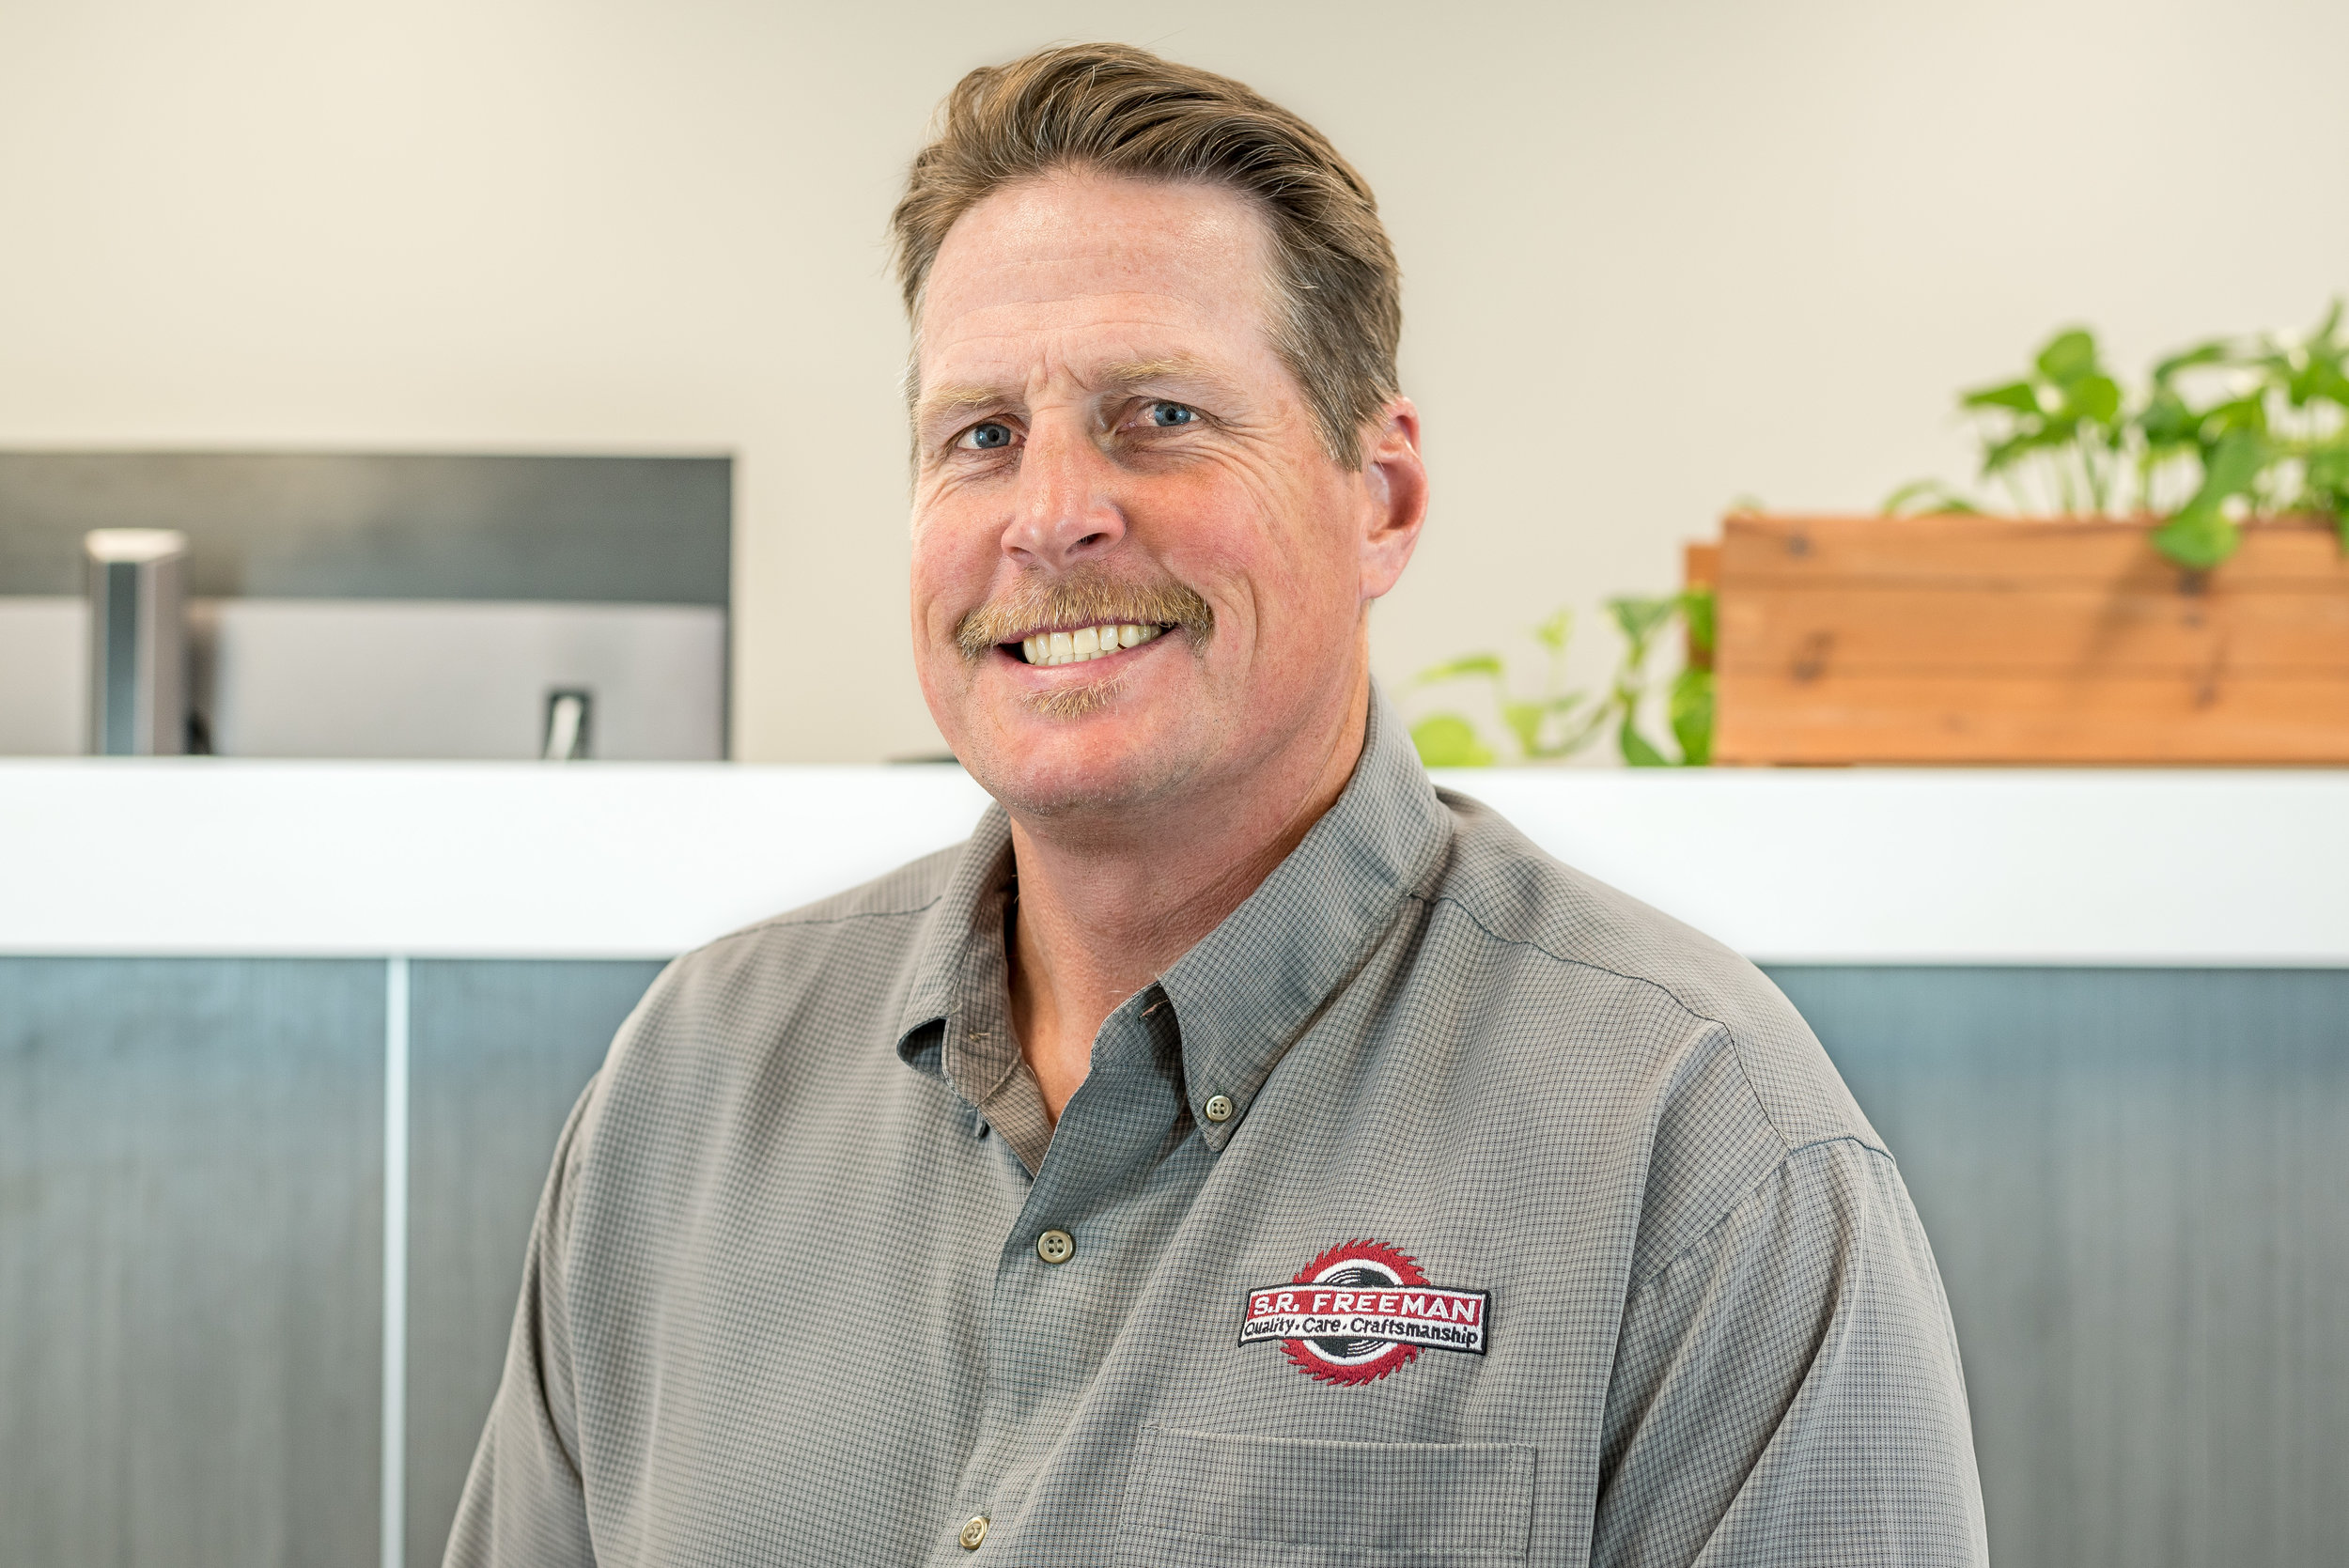 Mike LewisVice President - Mike has been at S.R. Freeman since 1998. A carpenter since the age of 14, Mike has a reputation for getting things done and puts that skill to work building effective teams and collaborative relationships. His deep roots in the industry have proven to be an invaluable resource to his team members and to S.R. Freeman clients. Outside of work, he enjoys chess, surfing, and CrossFit.